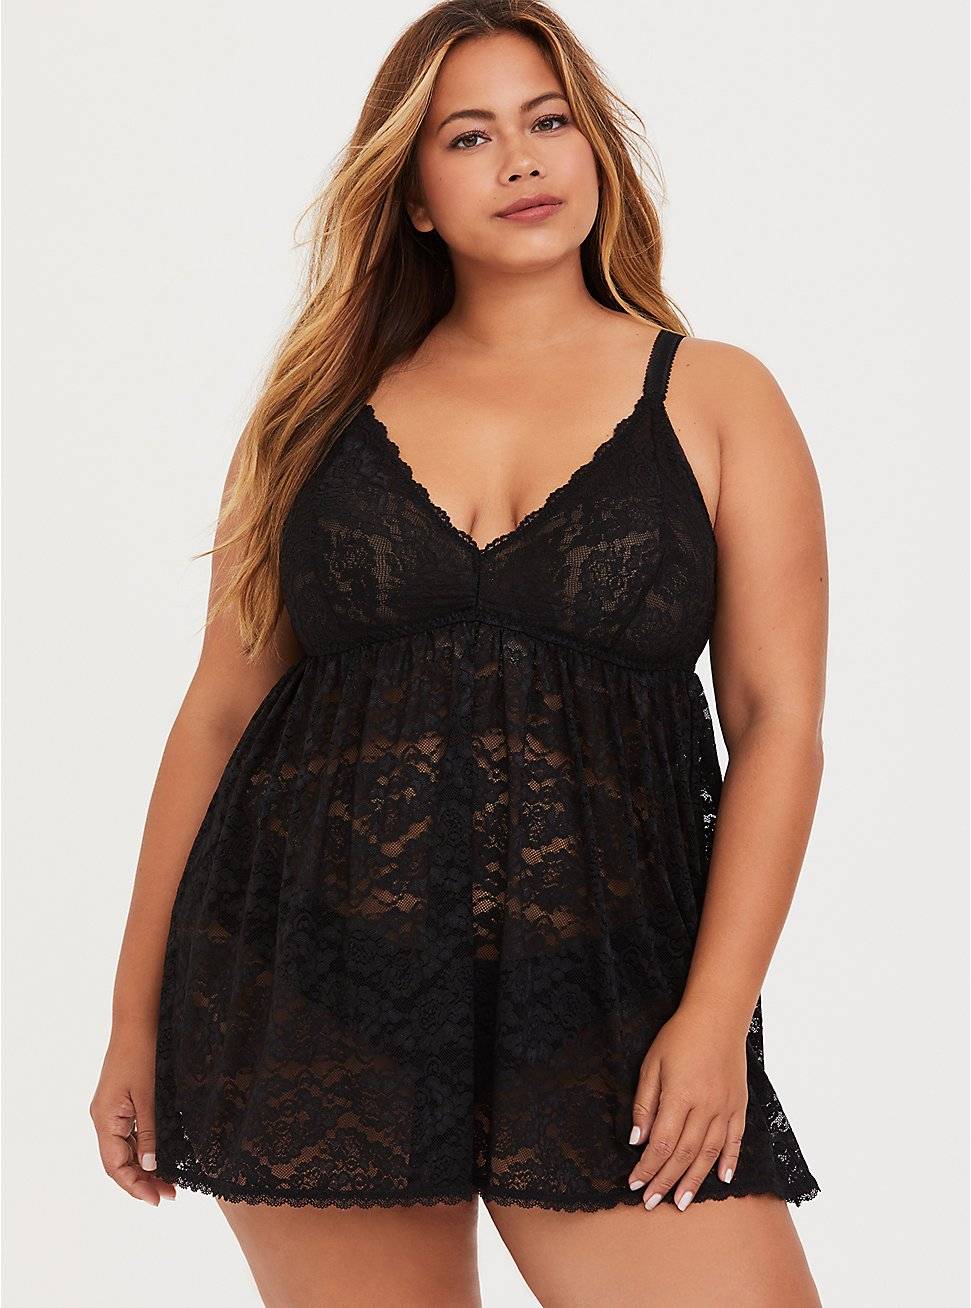 Black Lace Babydoll, , fitModel1-hires